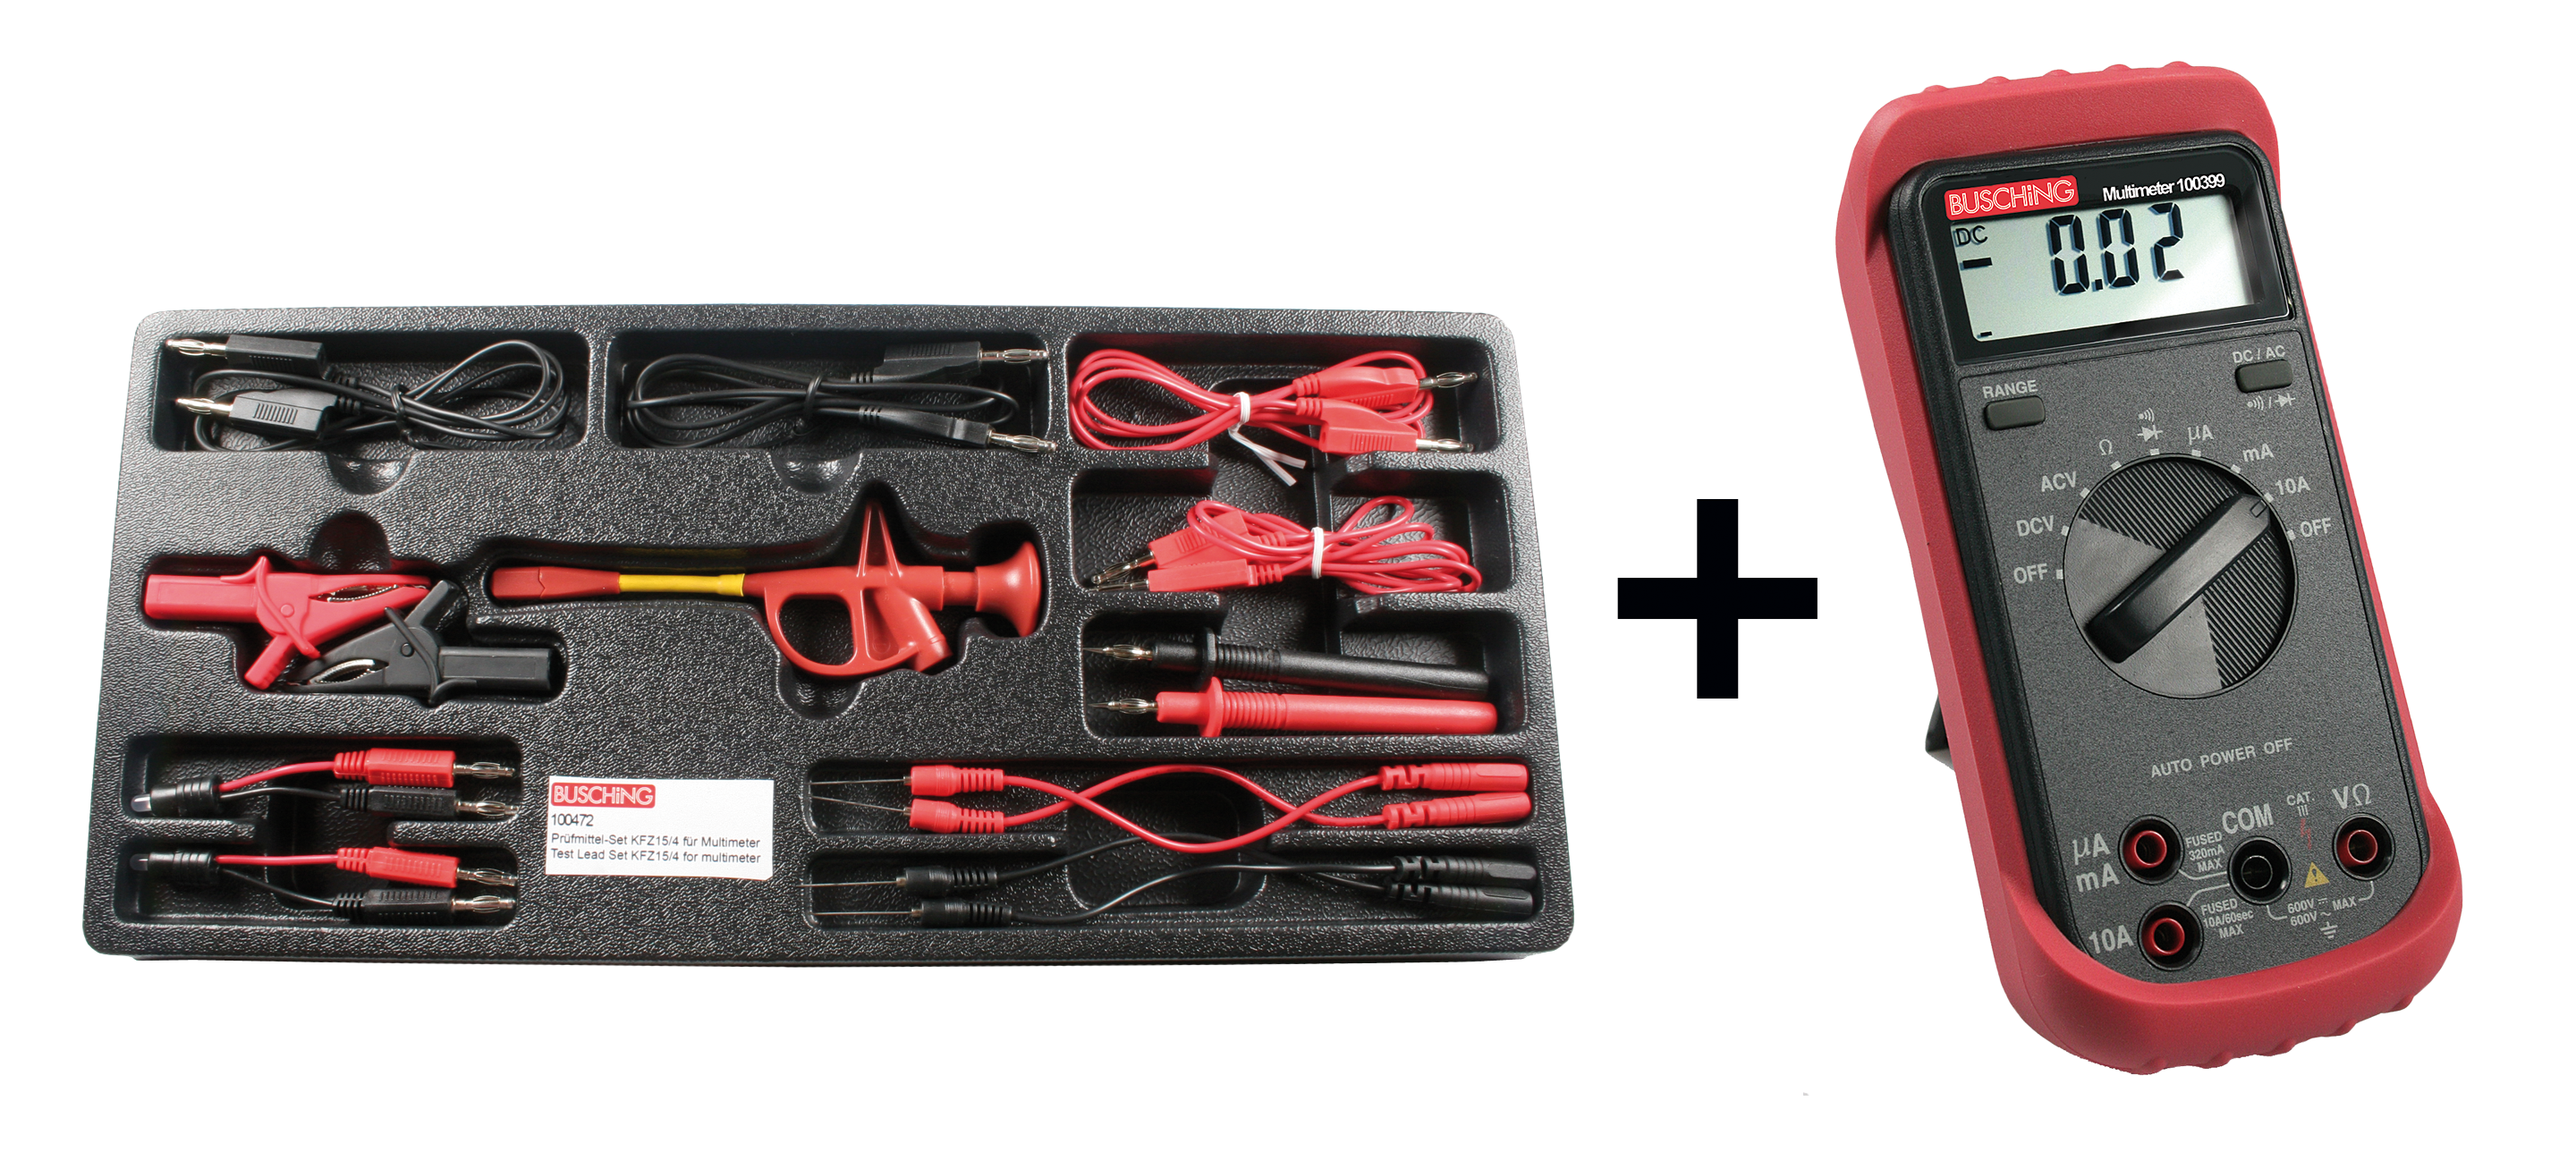 Prüfmittel-Diagnose-Set mit Multimeter | Messleitungen und Adapter ...